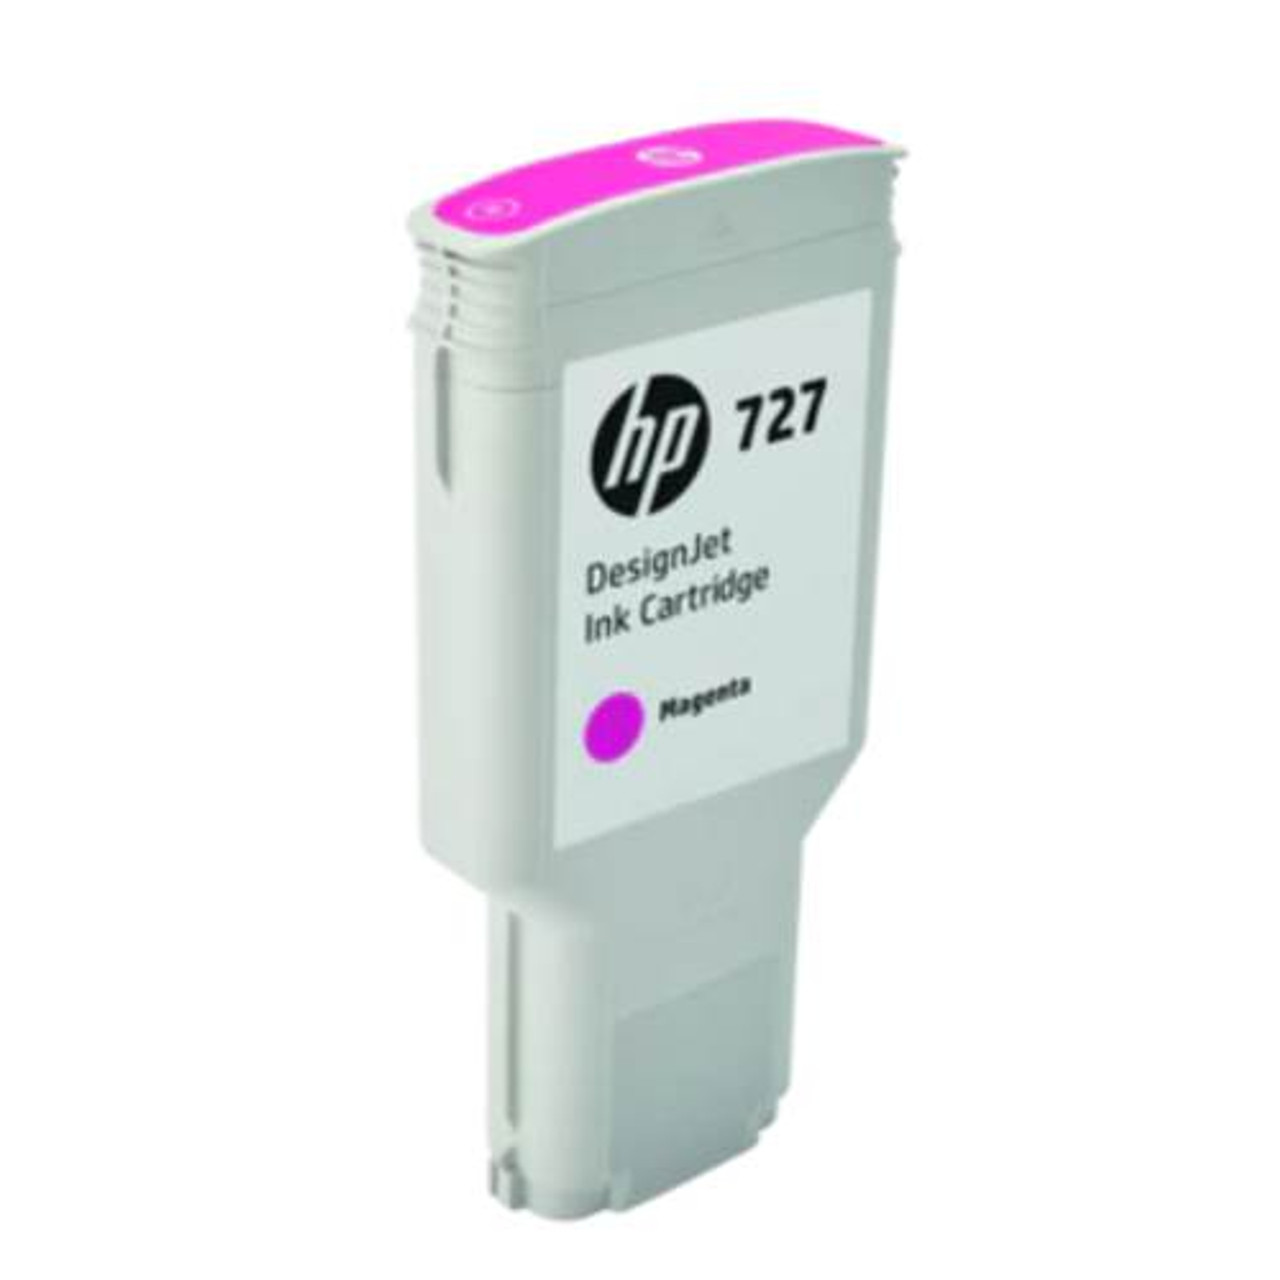 Image for HP727 300ML Ink Cartridge - Magenta (F9J77A) CX Computer Superstore